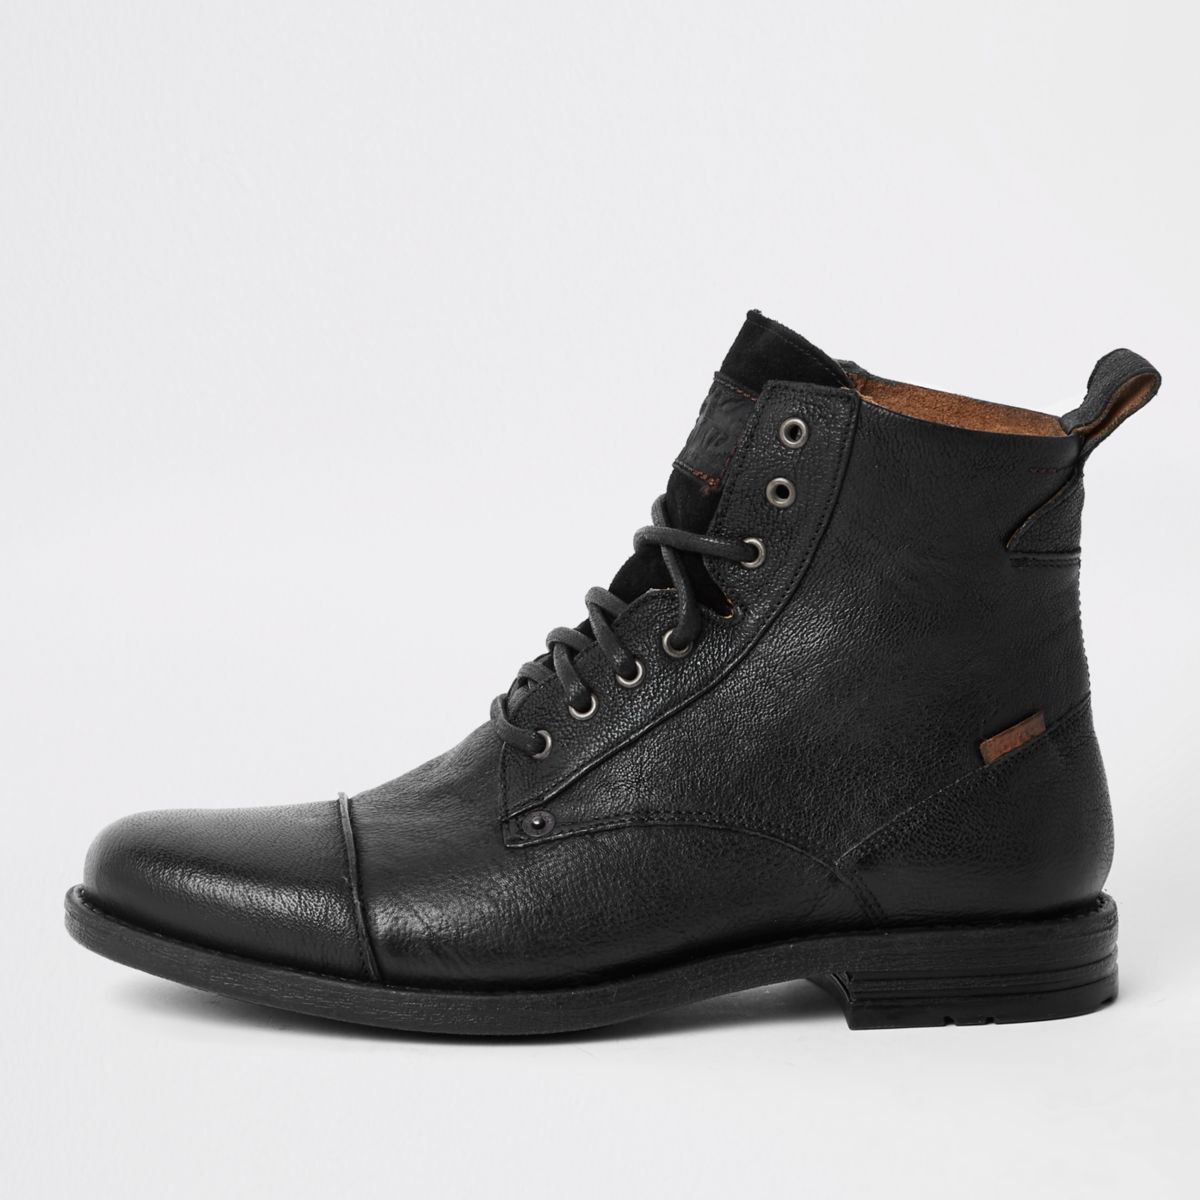 Chaussures River Island Pointure 46 noires homme  Or zyv3orD12